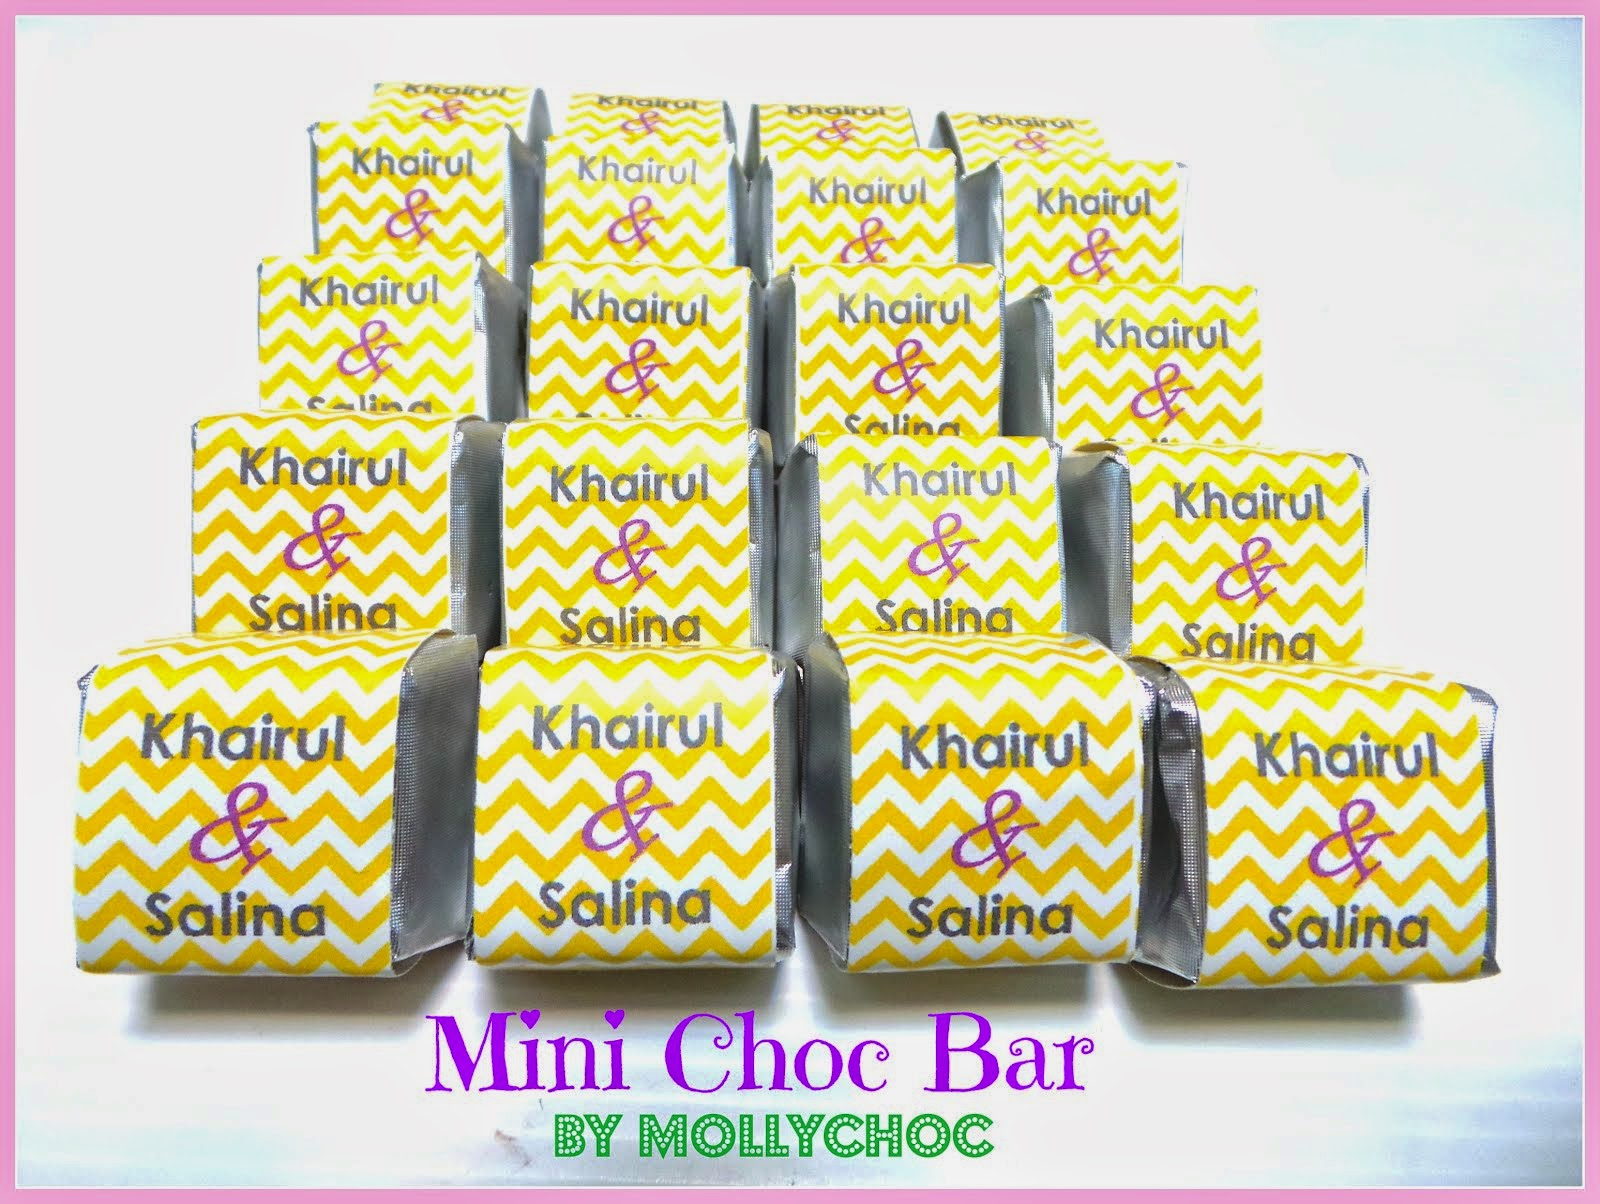 Mini Choc Bar